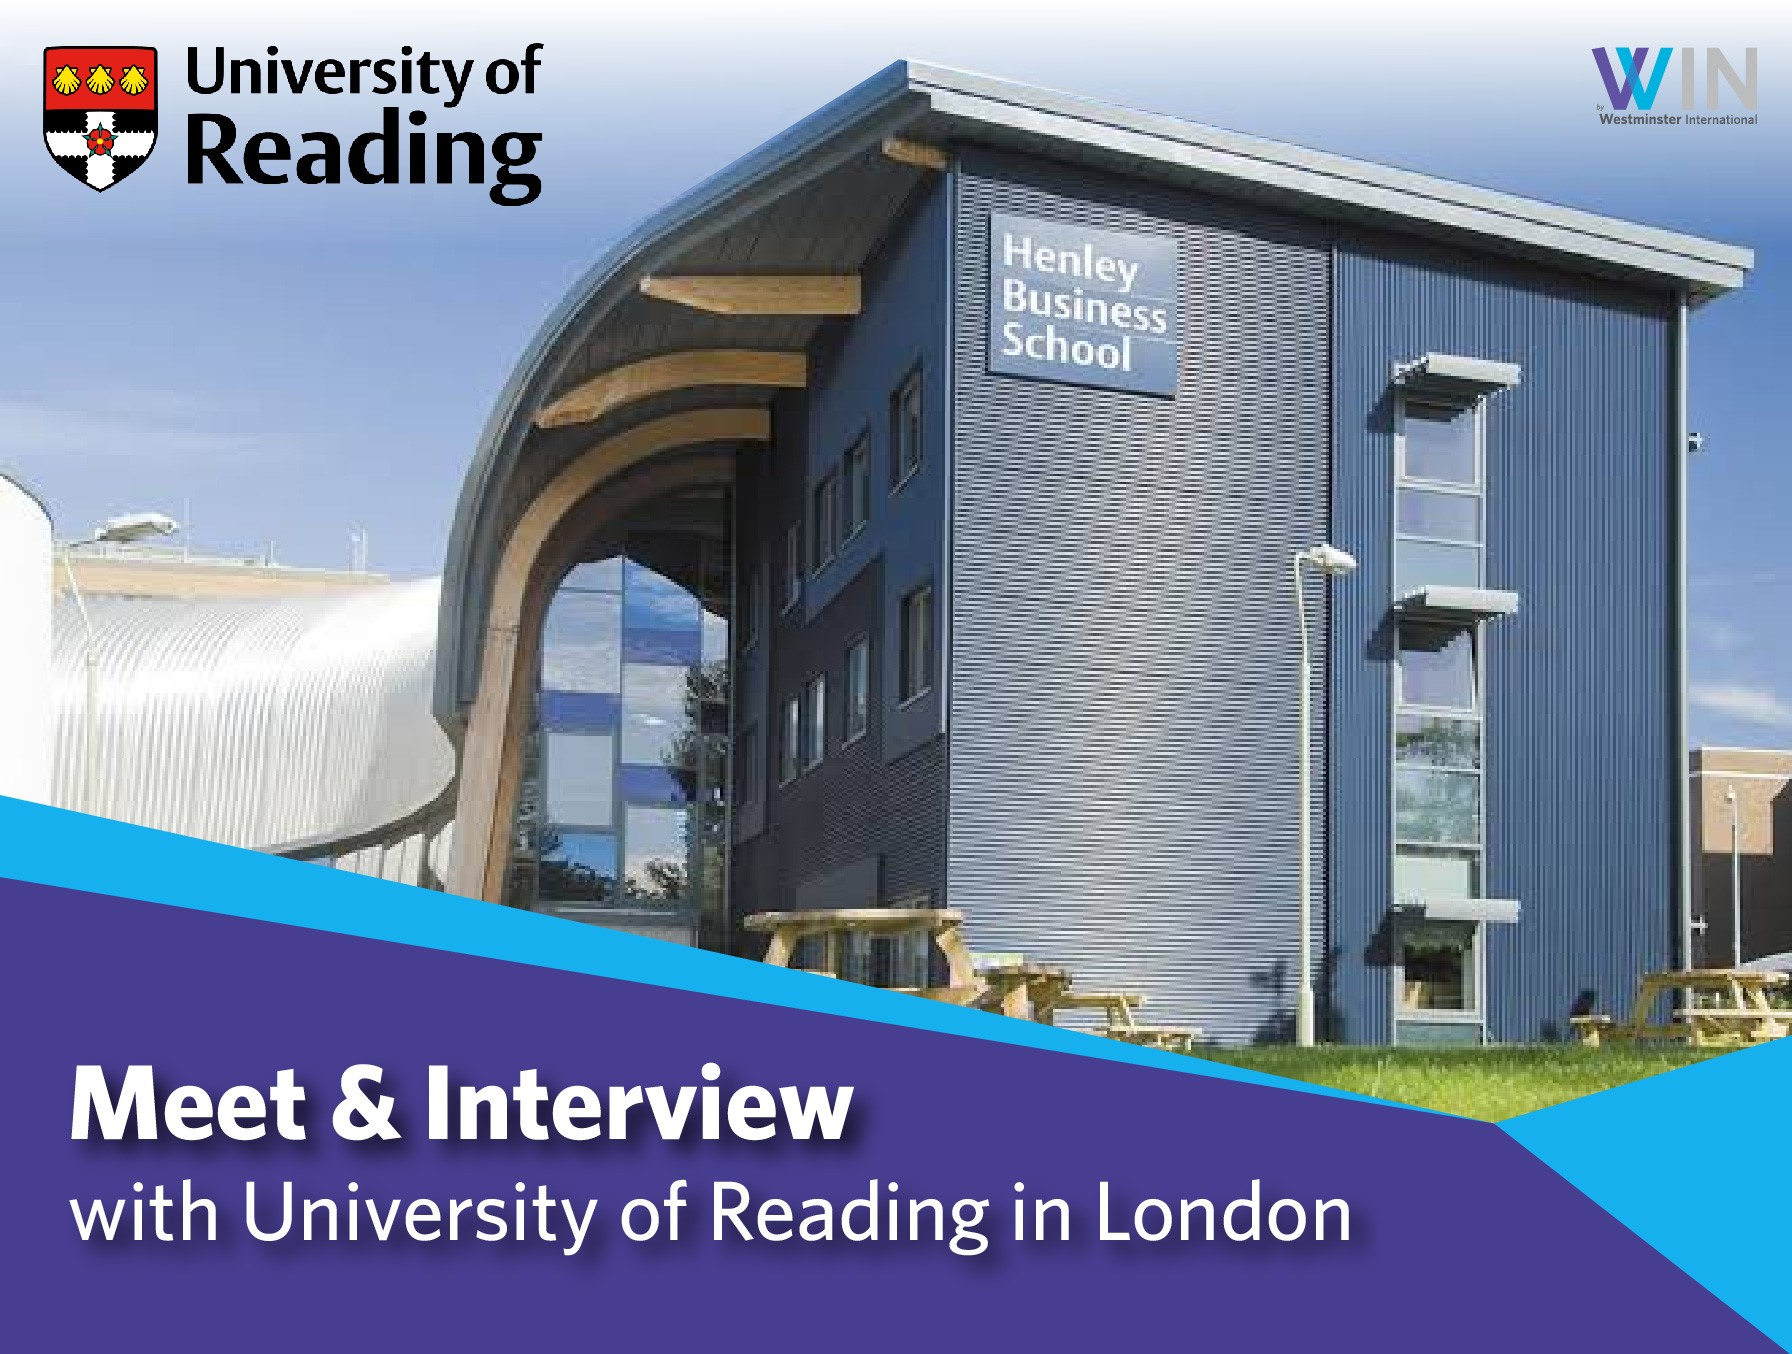 Meet & Interview with University of Reading in London